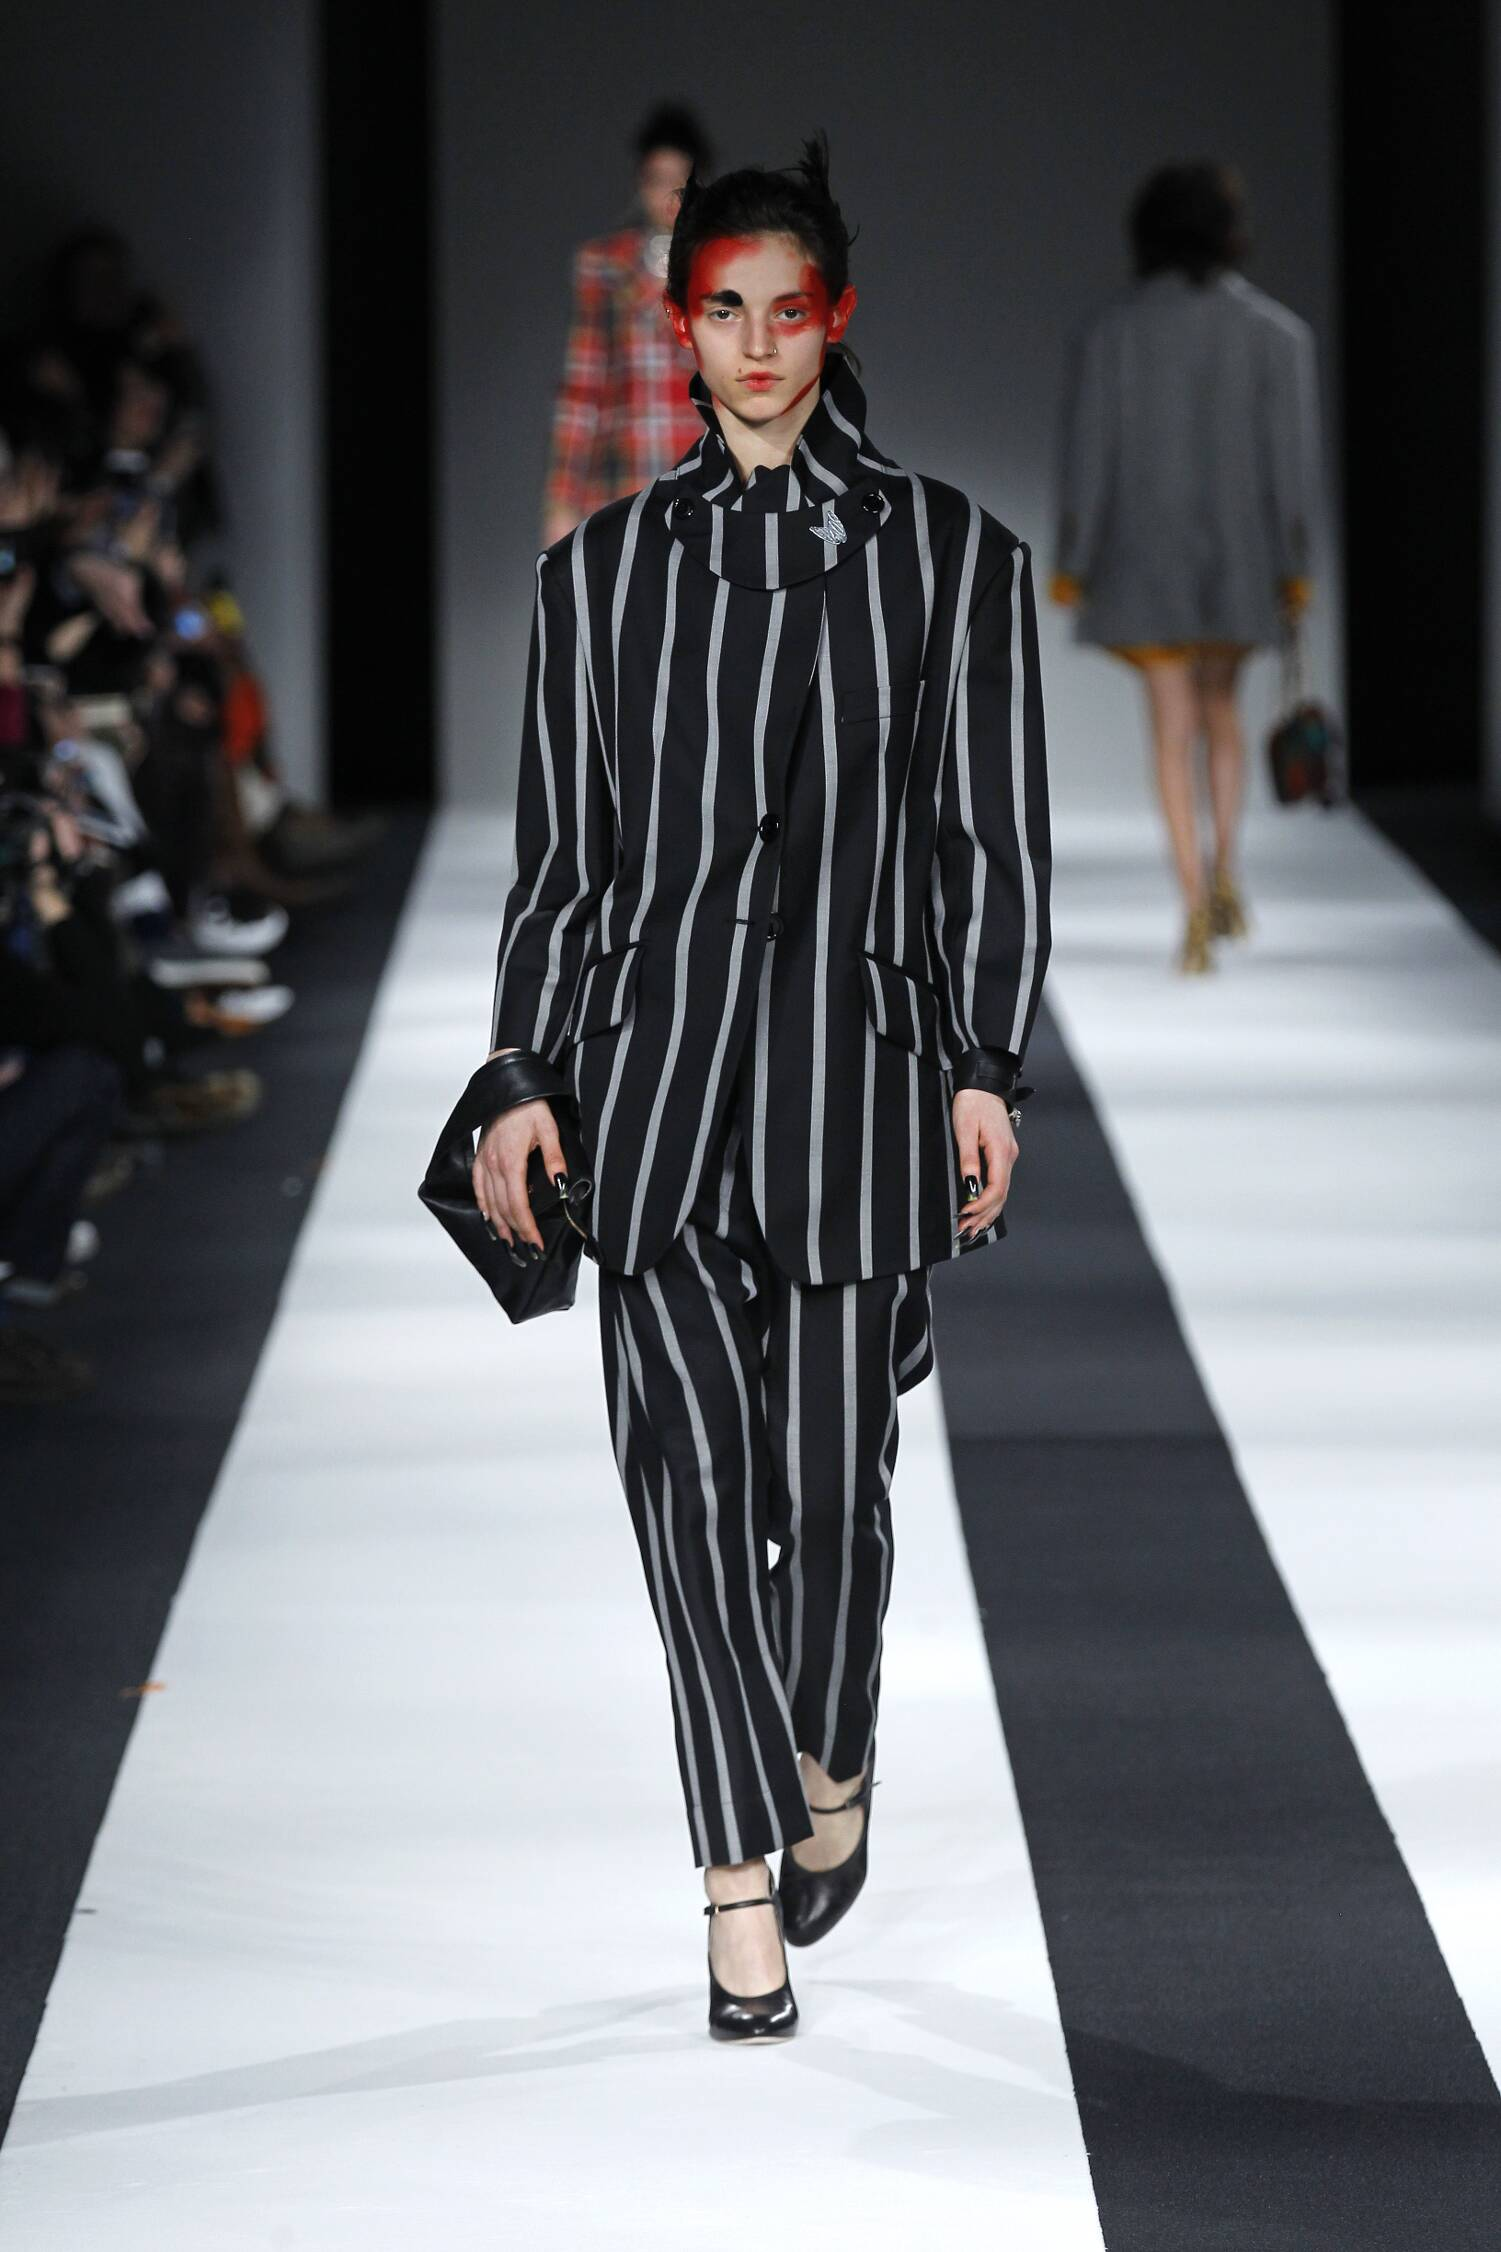 Runway Vivienne Westwood Red Label Fall Winter 2015 16 Women's Collection London Fashion Week